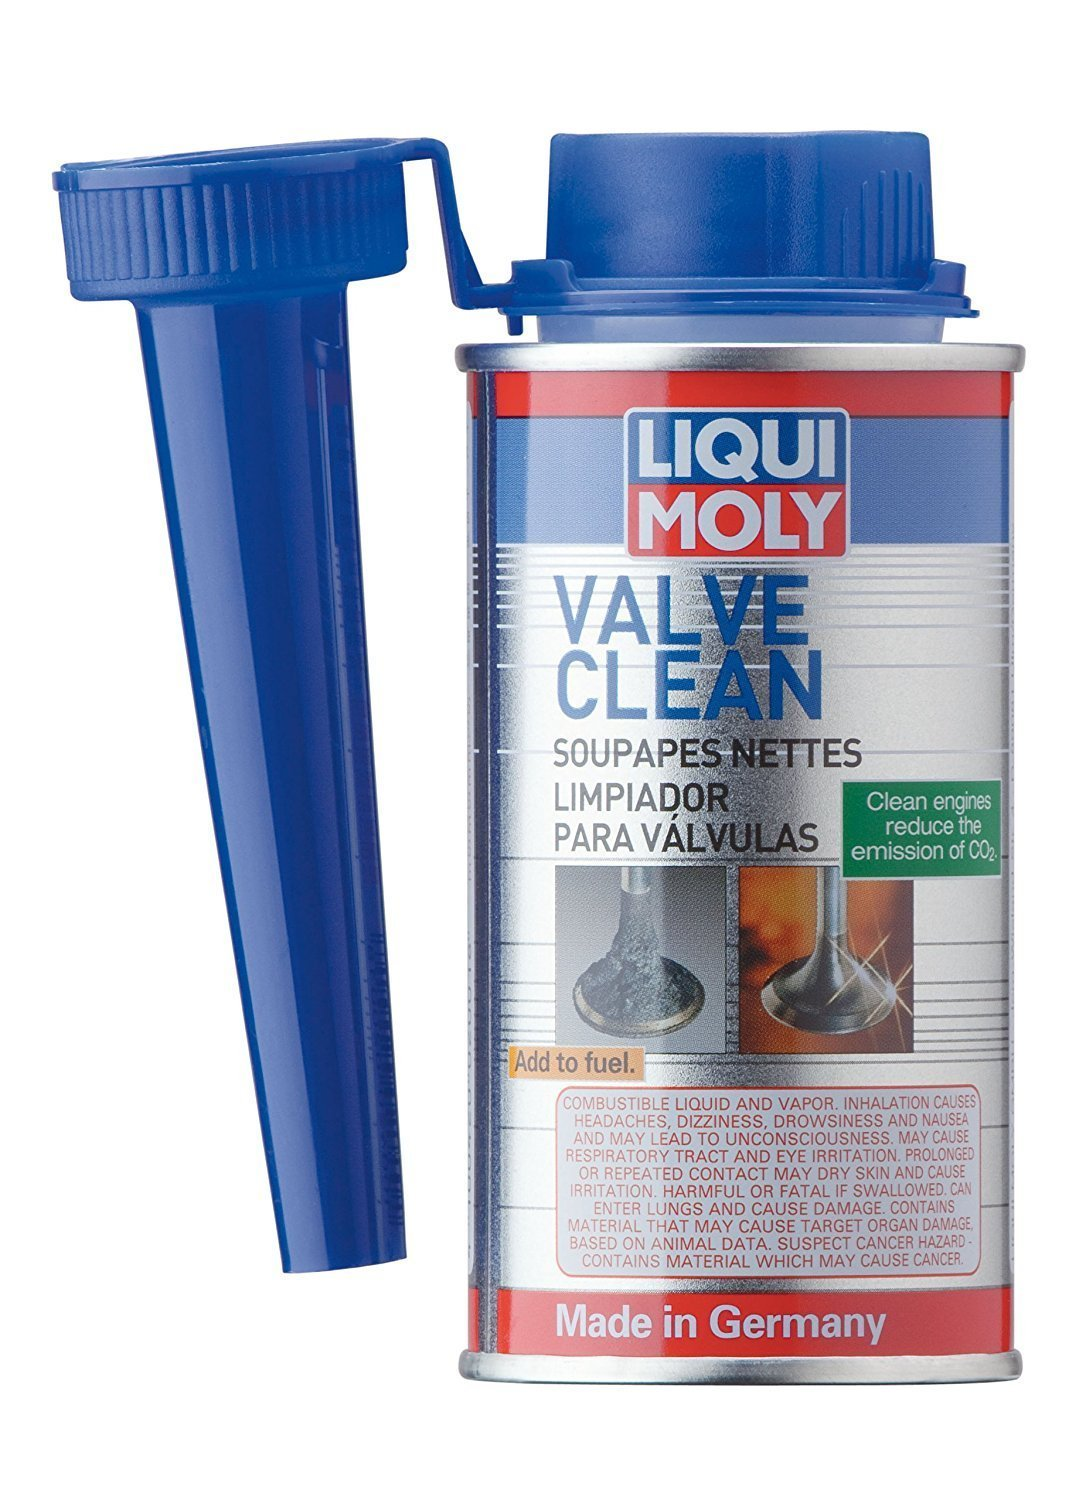 Liqui Moly (2001-12PK) Valve Clean - 150 ml, (Pack of 12)